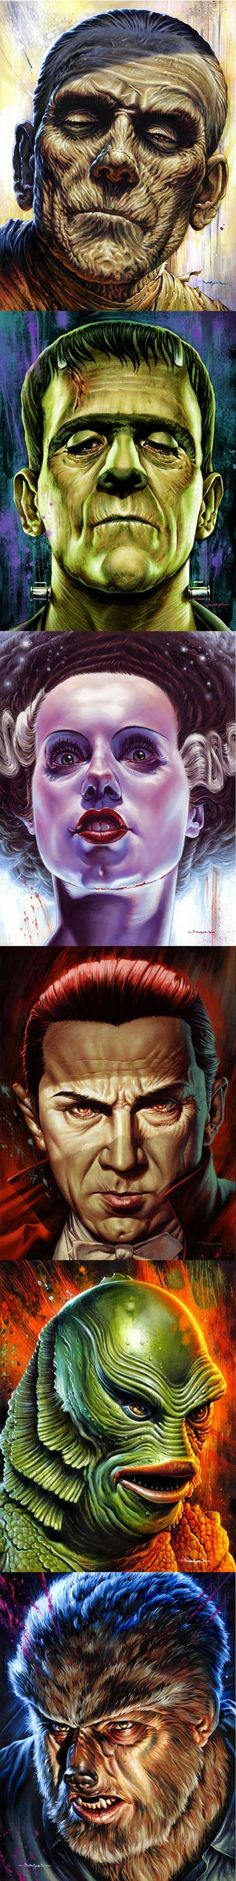 "Jason Edmiston's Incredible ""Monsters"" Series Paintings"